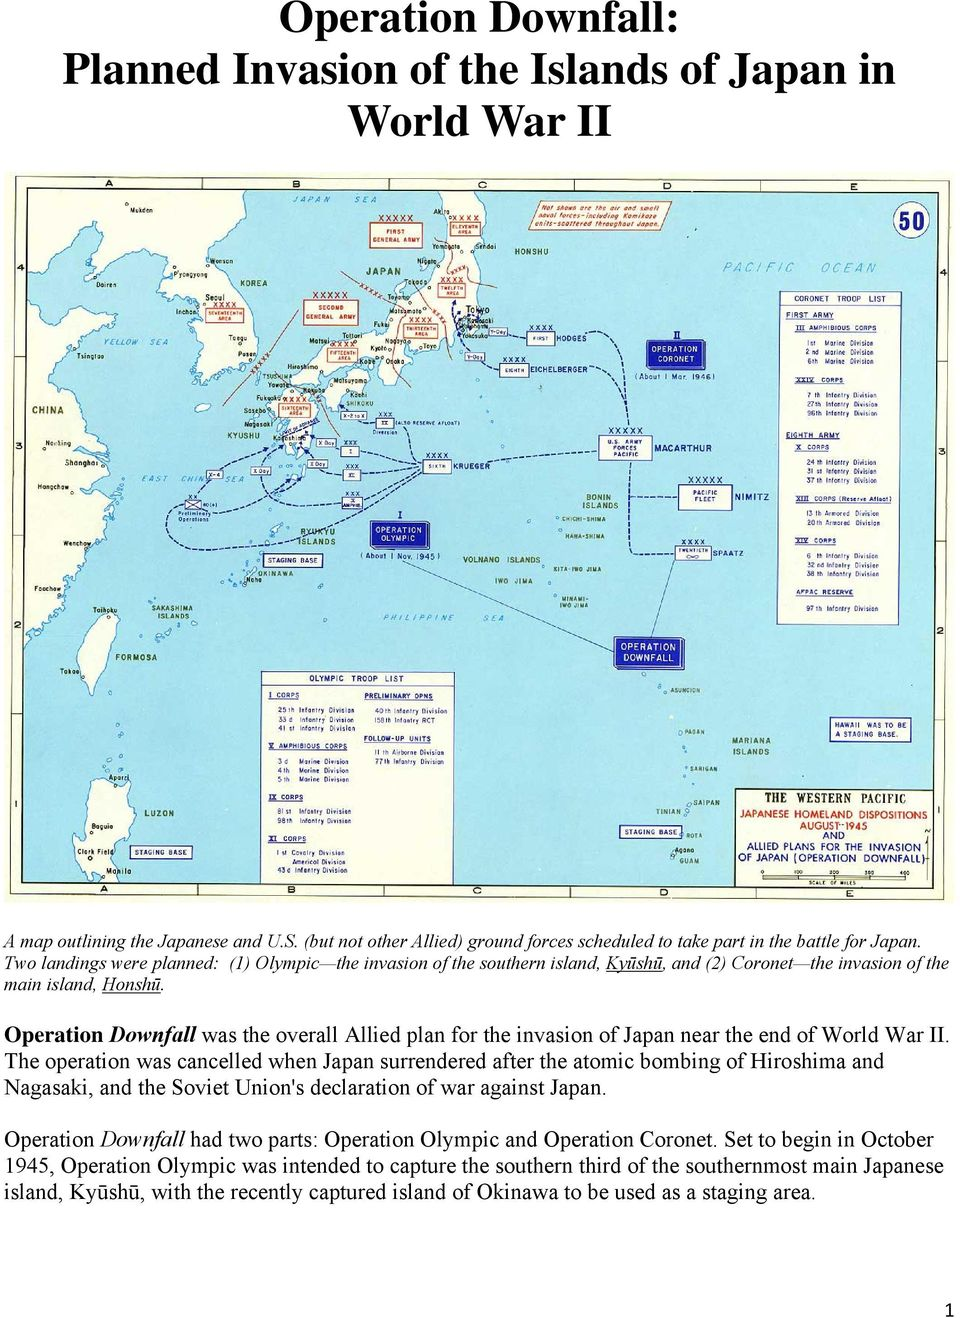 Operation Downfall was the overall Allied plan for the invasion of Japan near the end of World War II.